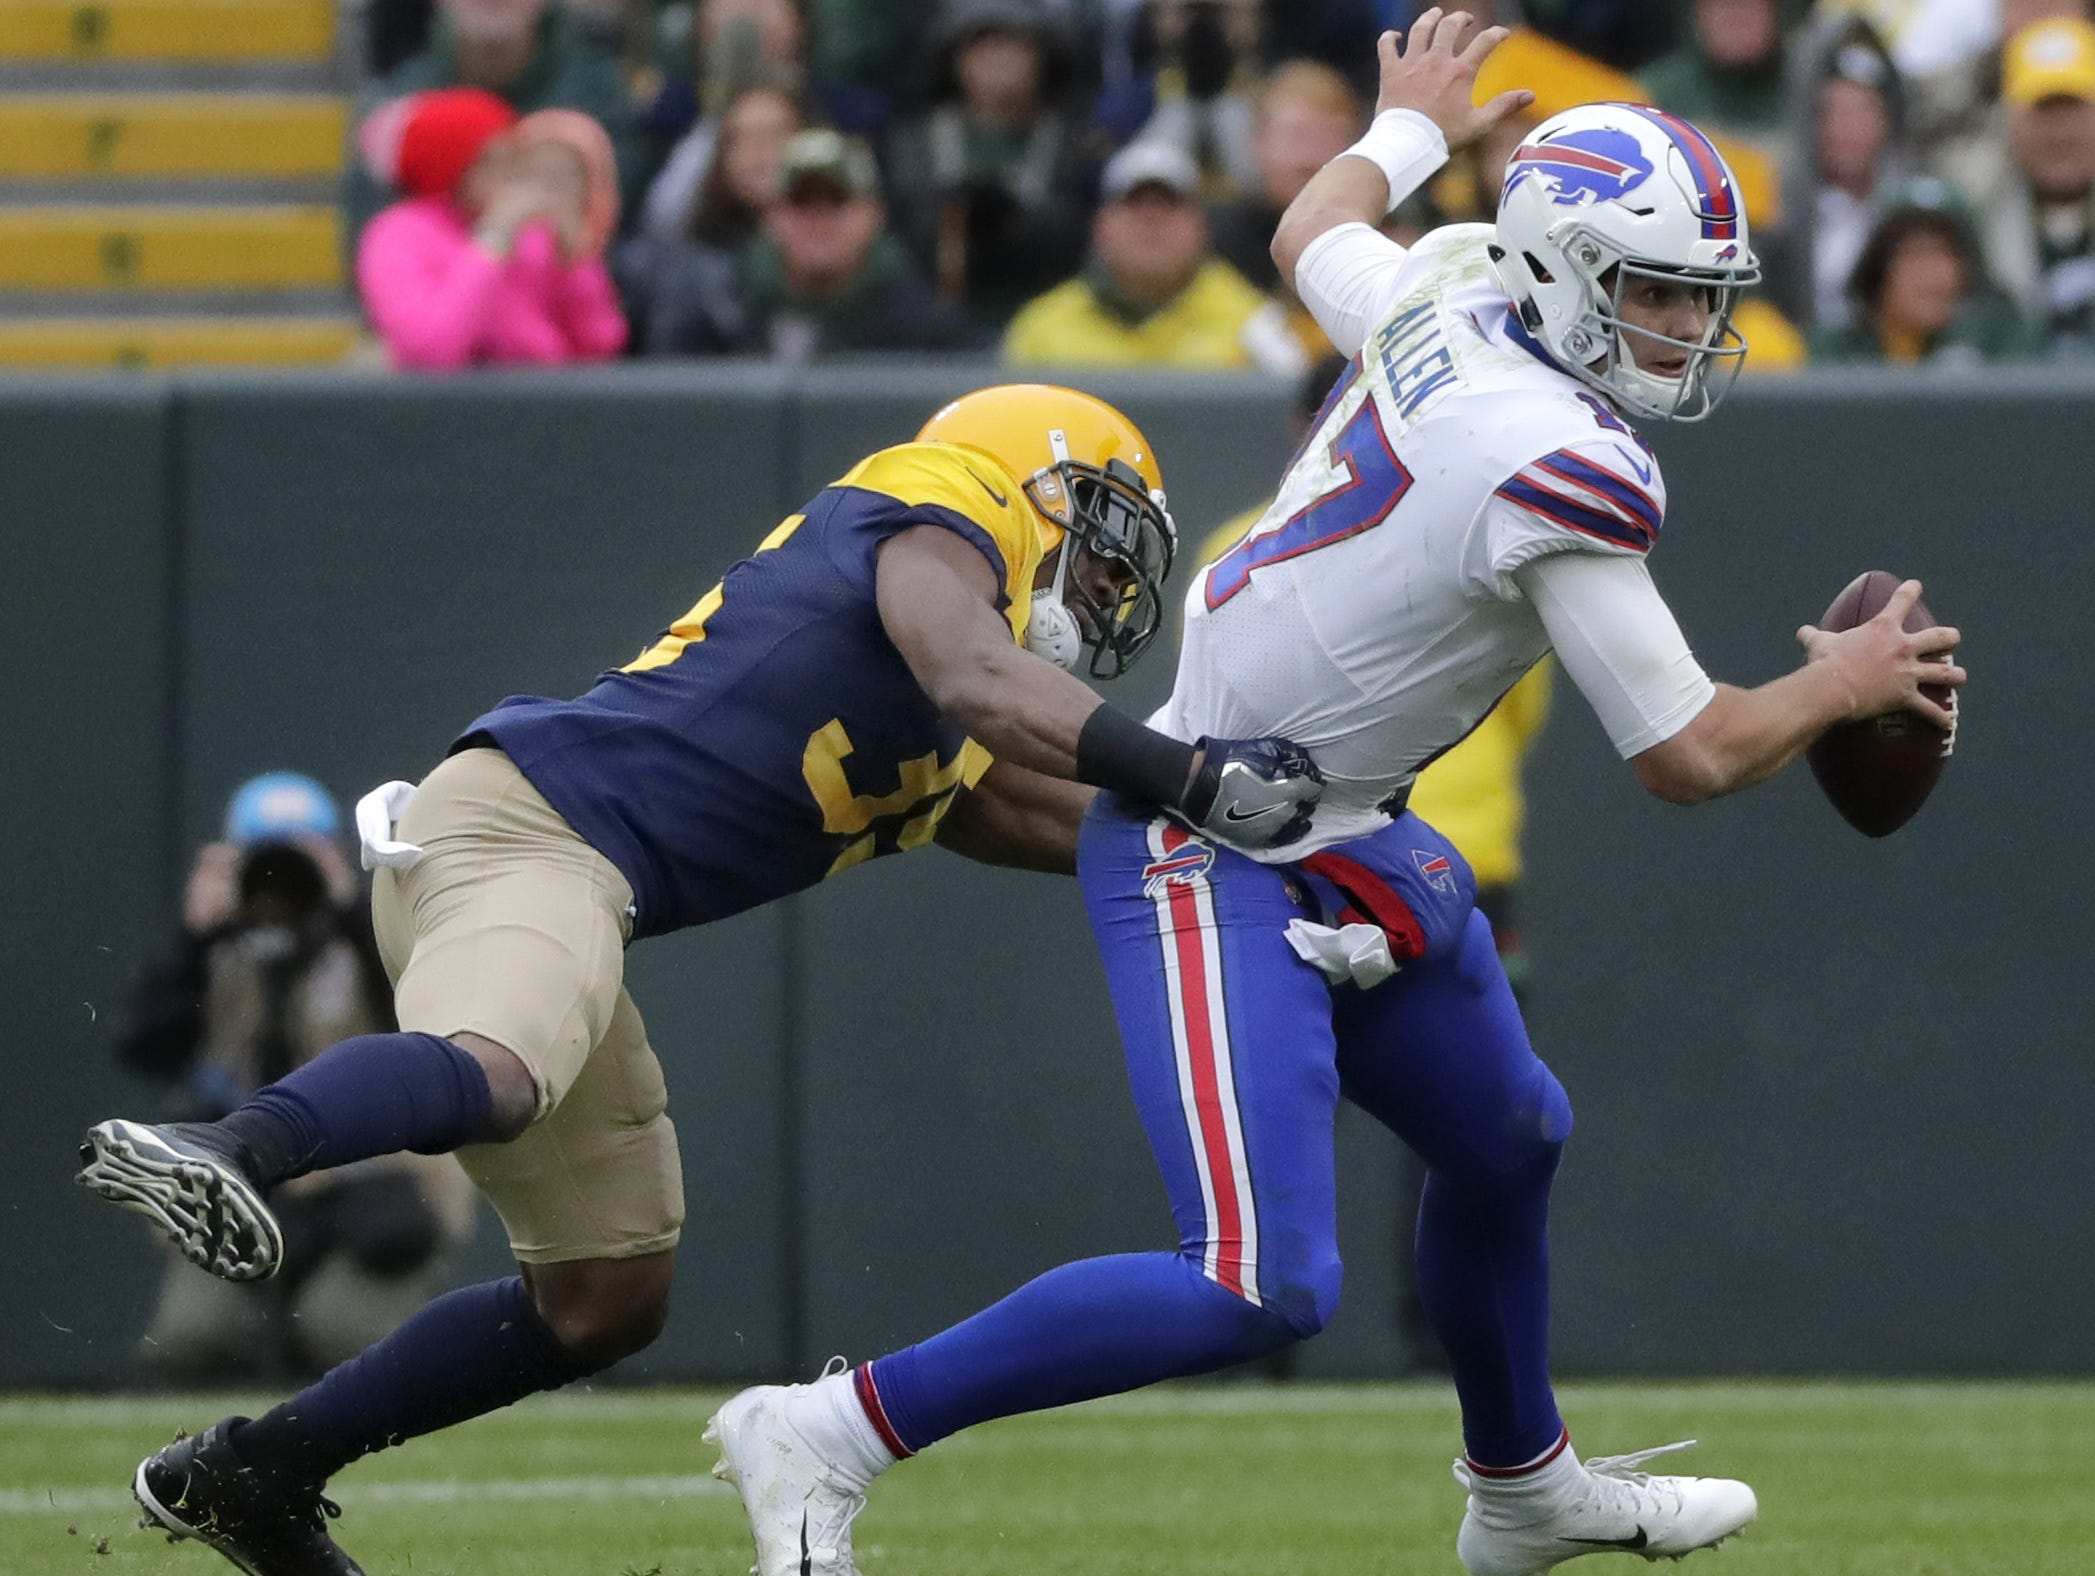 Green Bay Packers defensive back Jermaine Whitehead sacks Buffalo Bills quarterback Josh Allen on Sunday, September 30, 2018, at Lambeau Field in Green Bay, Wis.  Wm. Glasheen/USA TODAY NETWORK-Wisconsin.